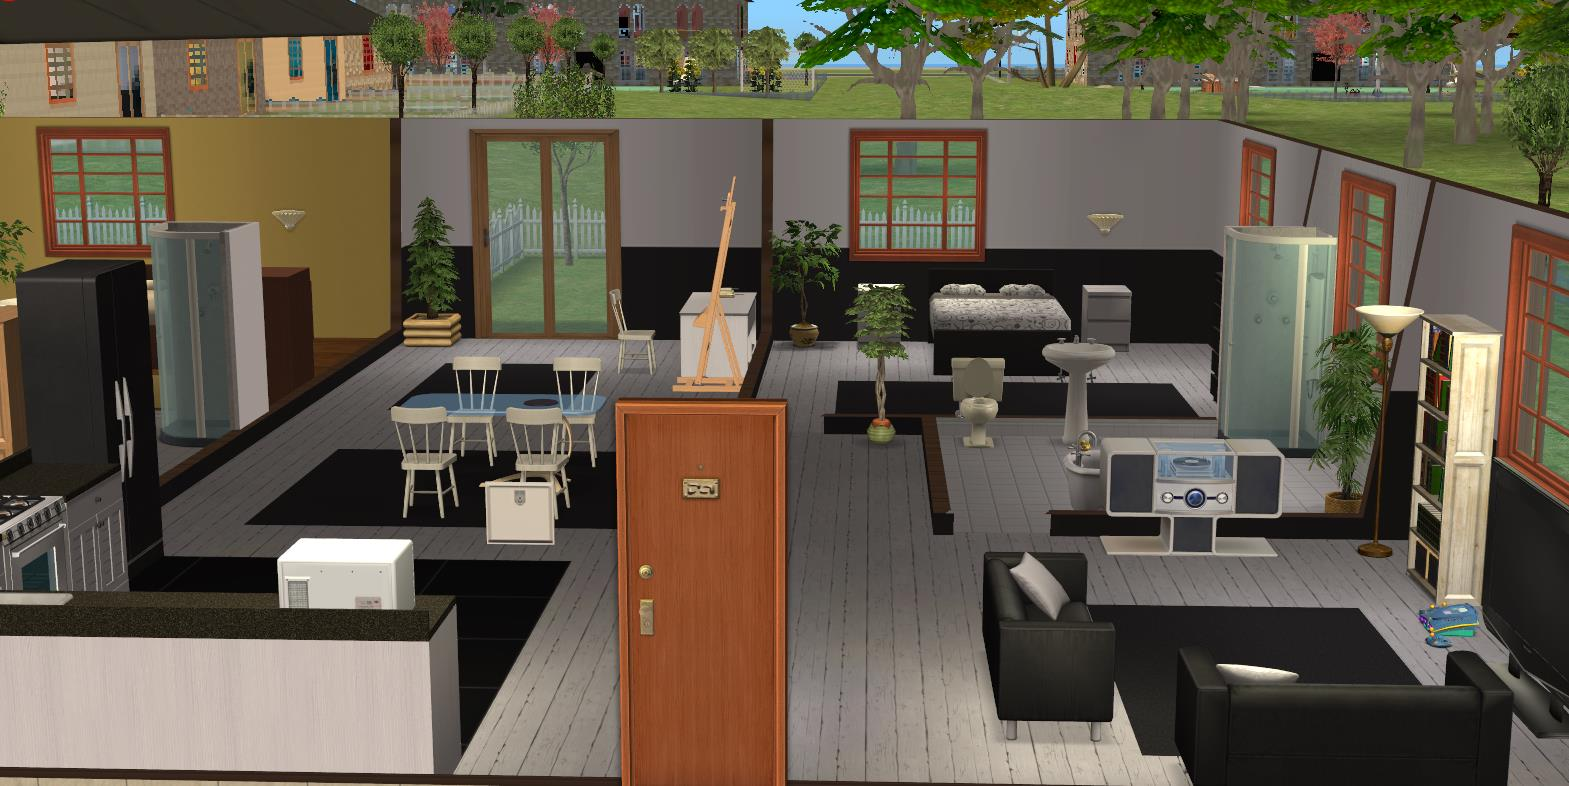 Mod the sims luxury apartments for Apartment design sims 3